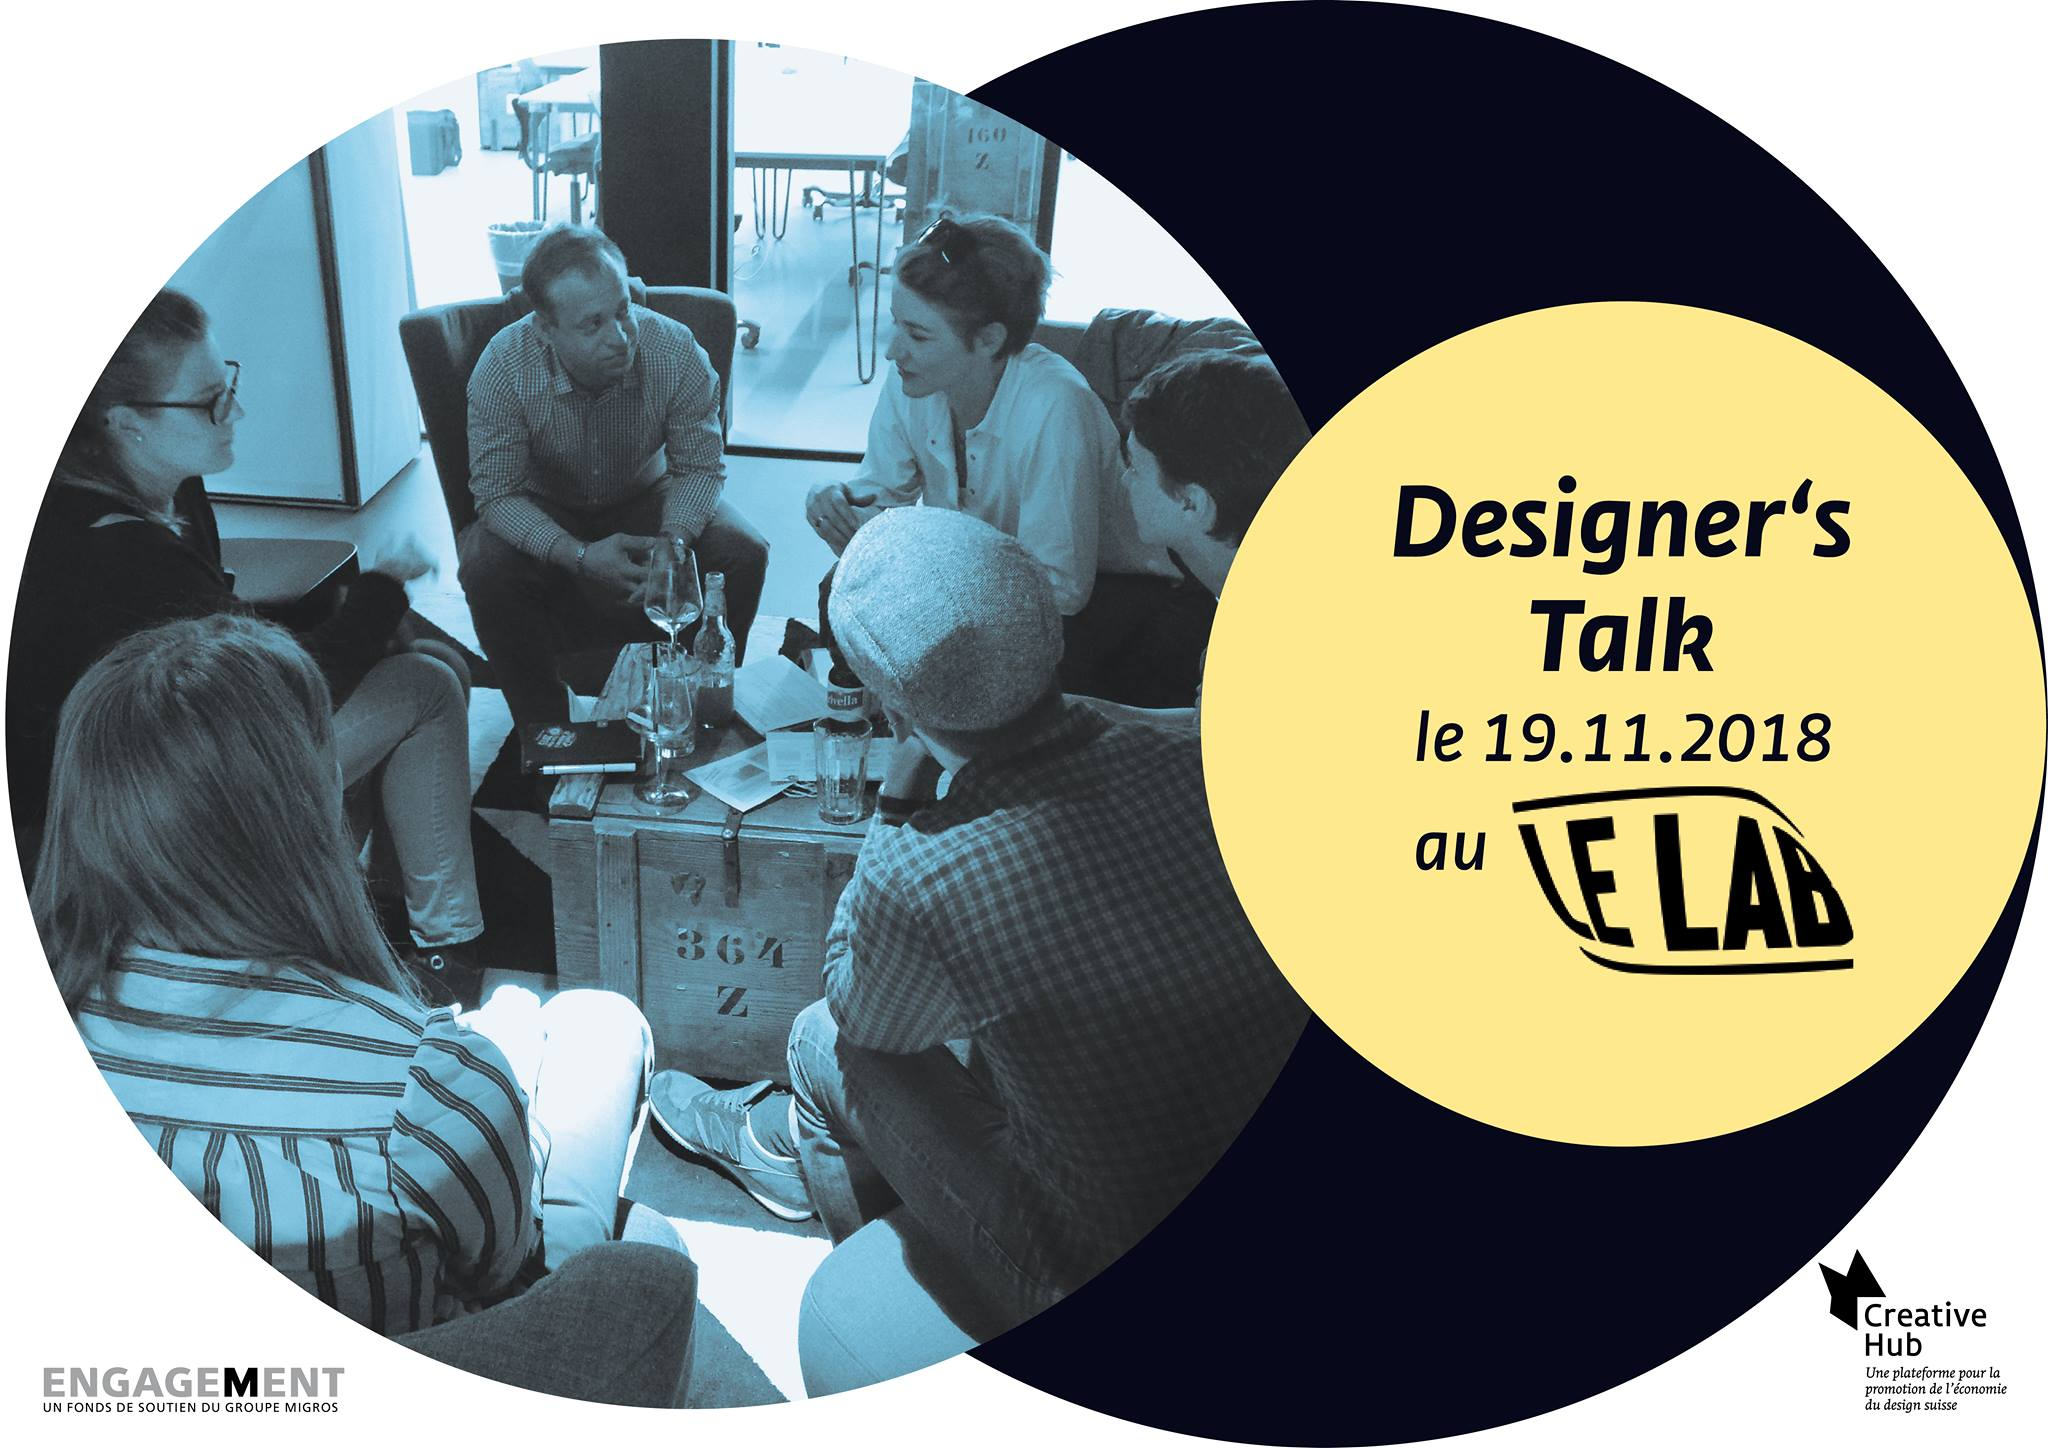 Presentation at Designer's Talk, Le LAB, Lausanne, 19.11.2018   Creative Hub is the first national platform for the support of Swiss designers in the implementation and commercialisation of their product and business ideas. Creative Hub supports Swiss designers in the promotion and utilisation of their product, service and business ideas.